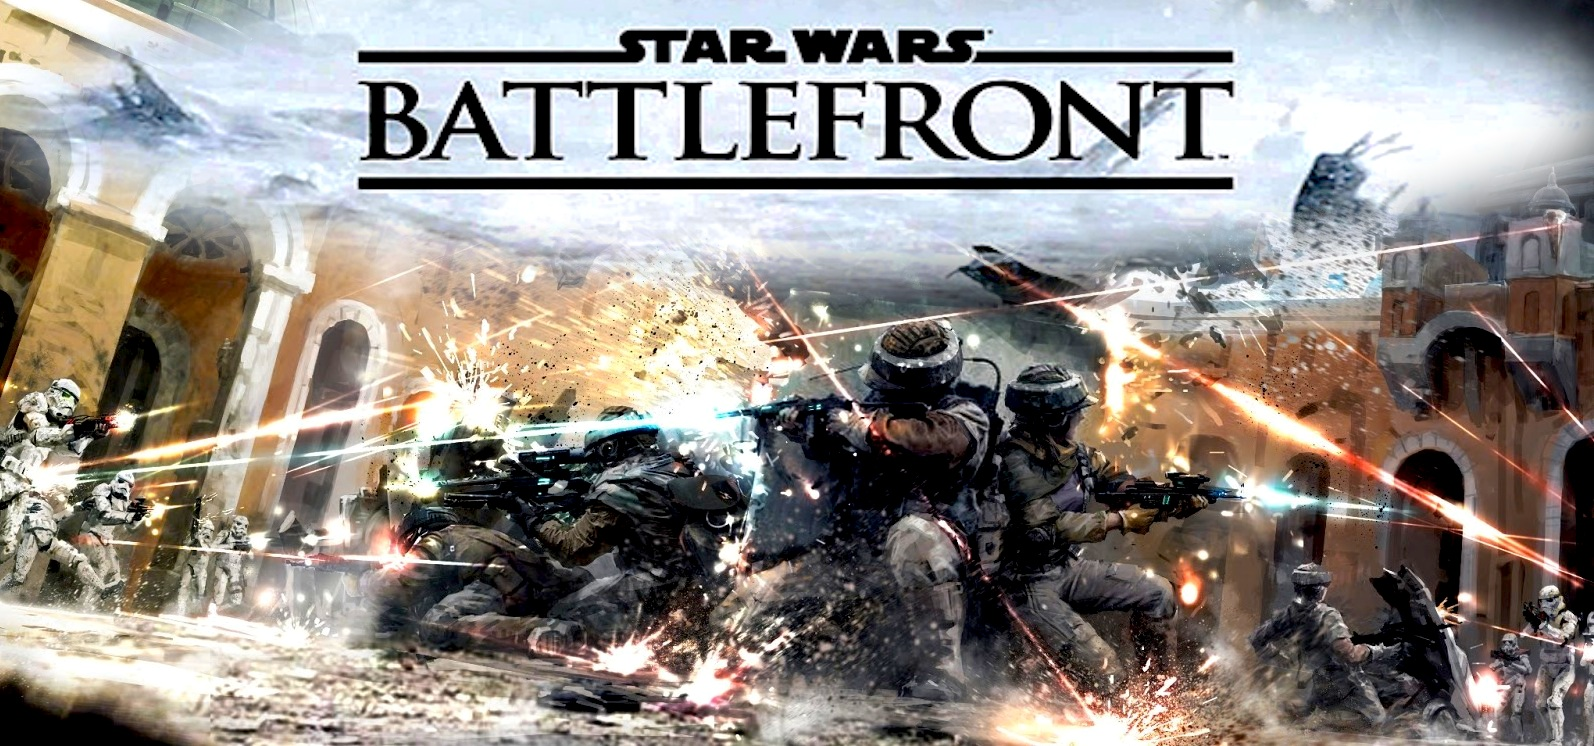 46 Star Wars Battlefront 2015 Wallpaper On Wallpapersafari